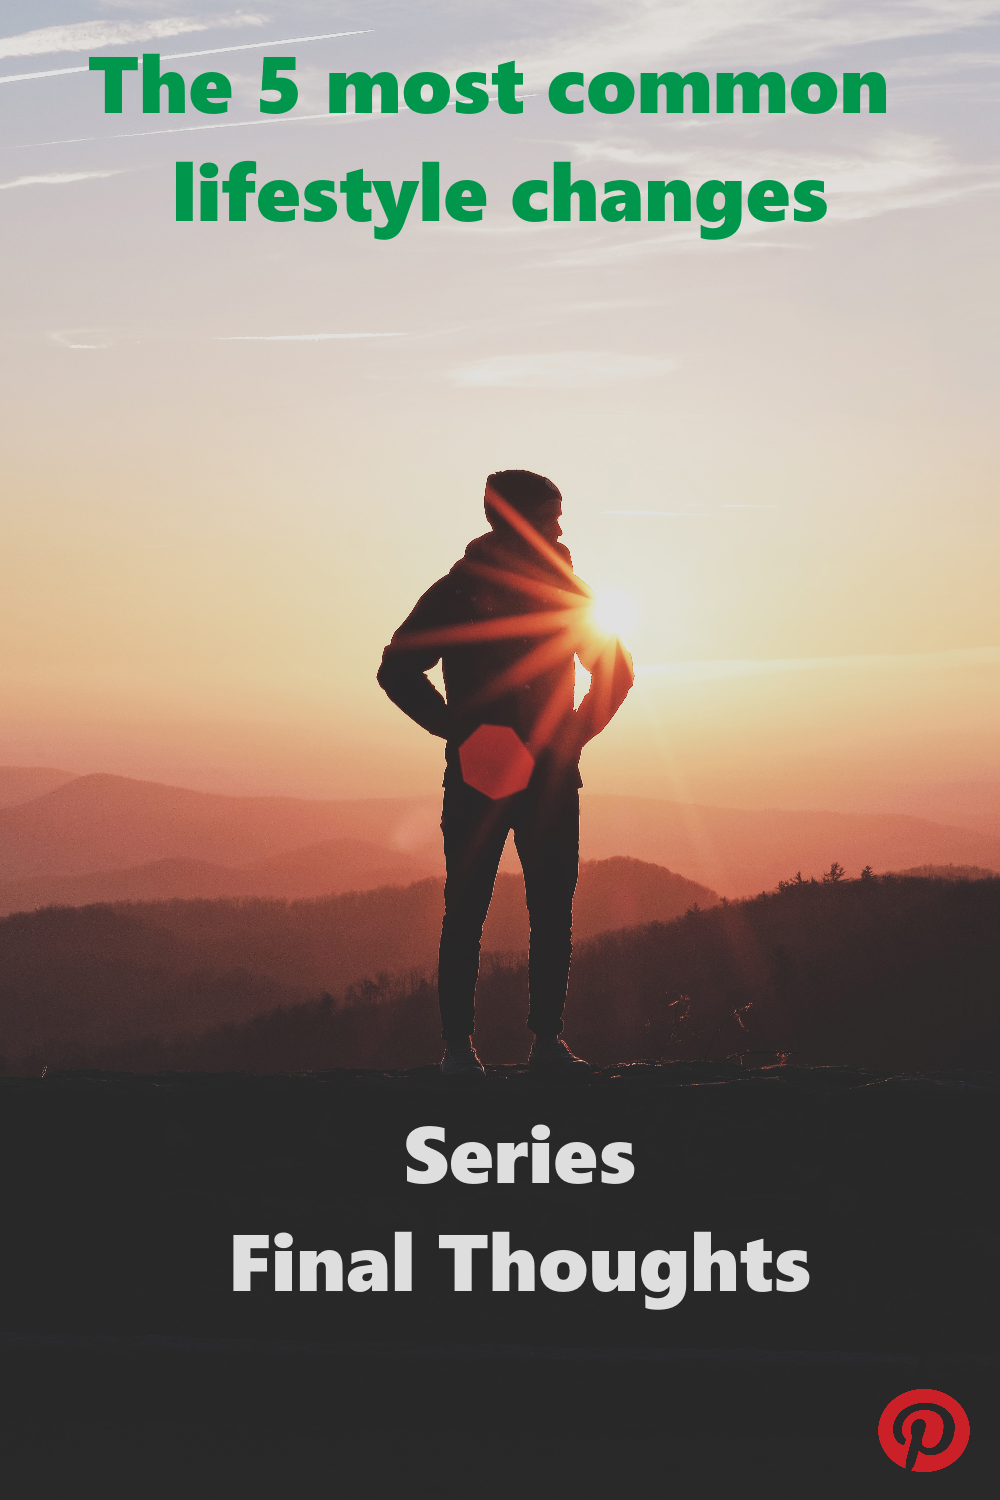 The 5 most common lifestyle changes – Series Final Thoughts